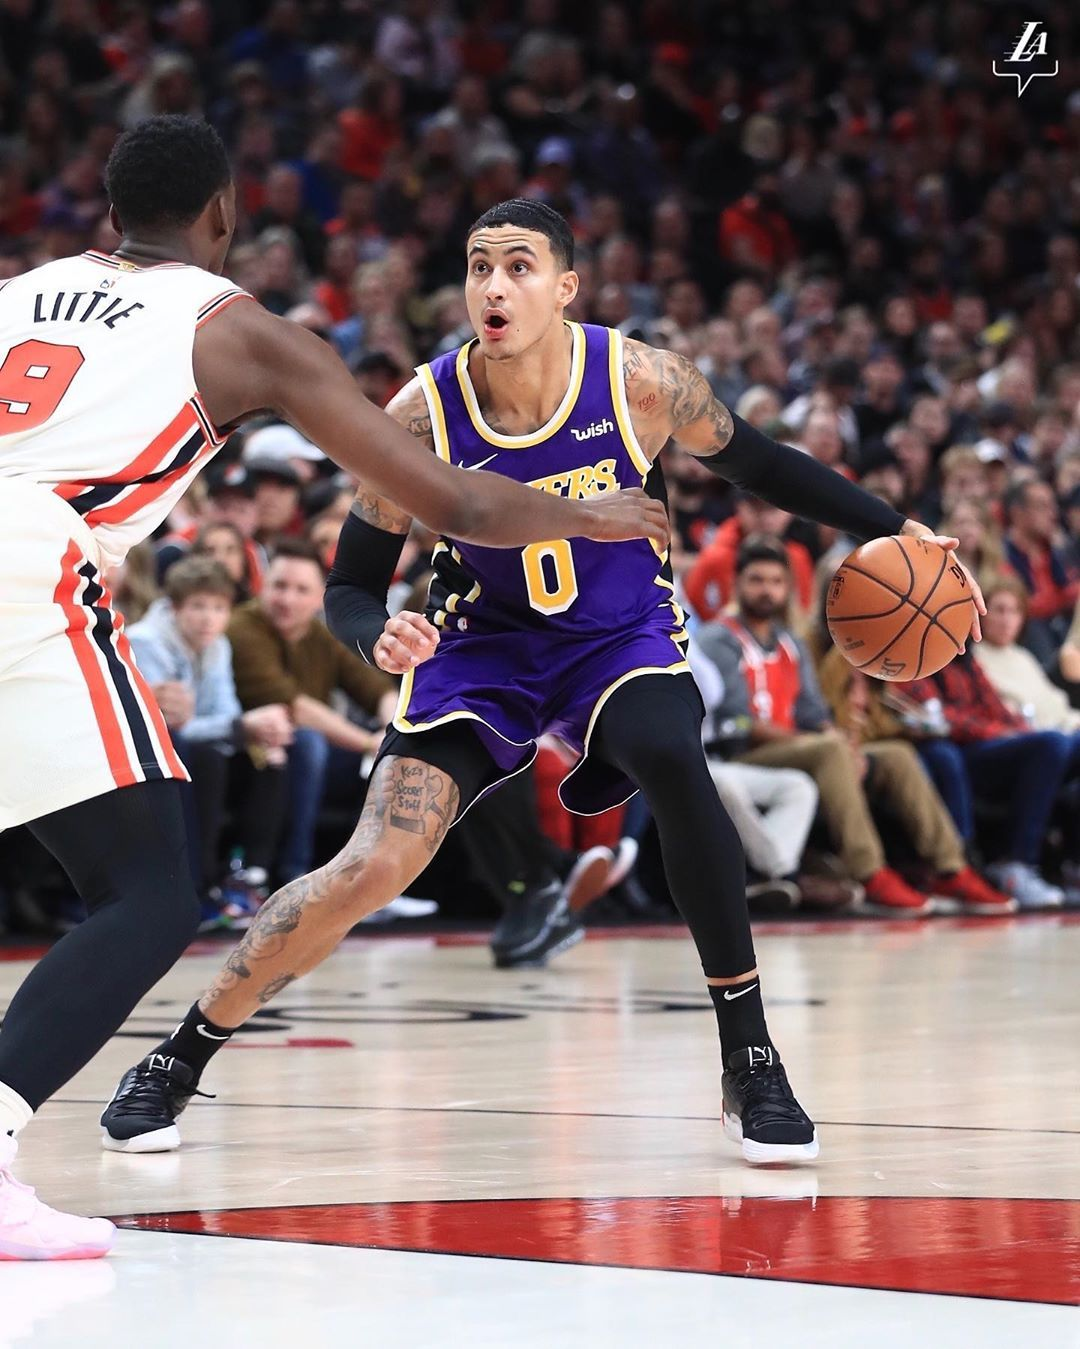 71 4k Likes 307 Comments Los Angeles Lakers Lakers On Instagram Kuz Is Up To 14 Points In The Half 0 Lake Kyle Kuzma Los Angeles Lakers Nba Fashion